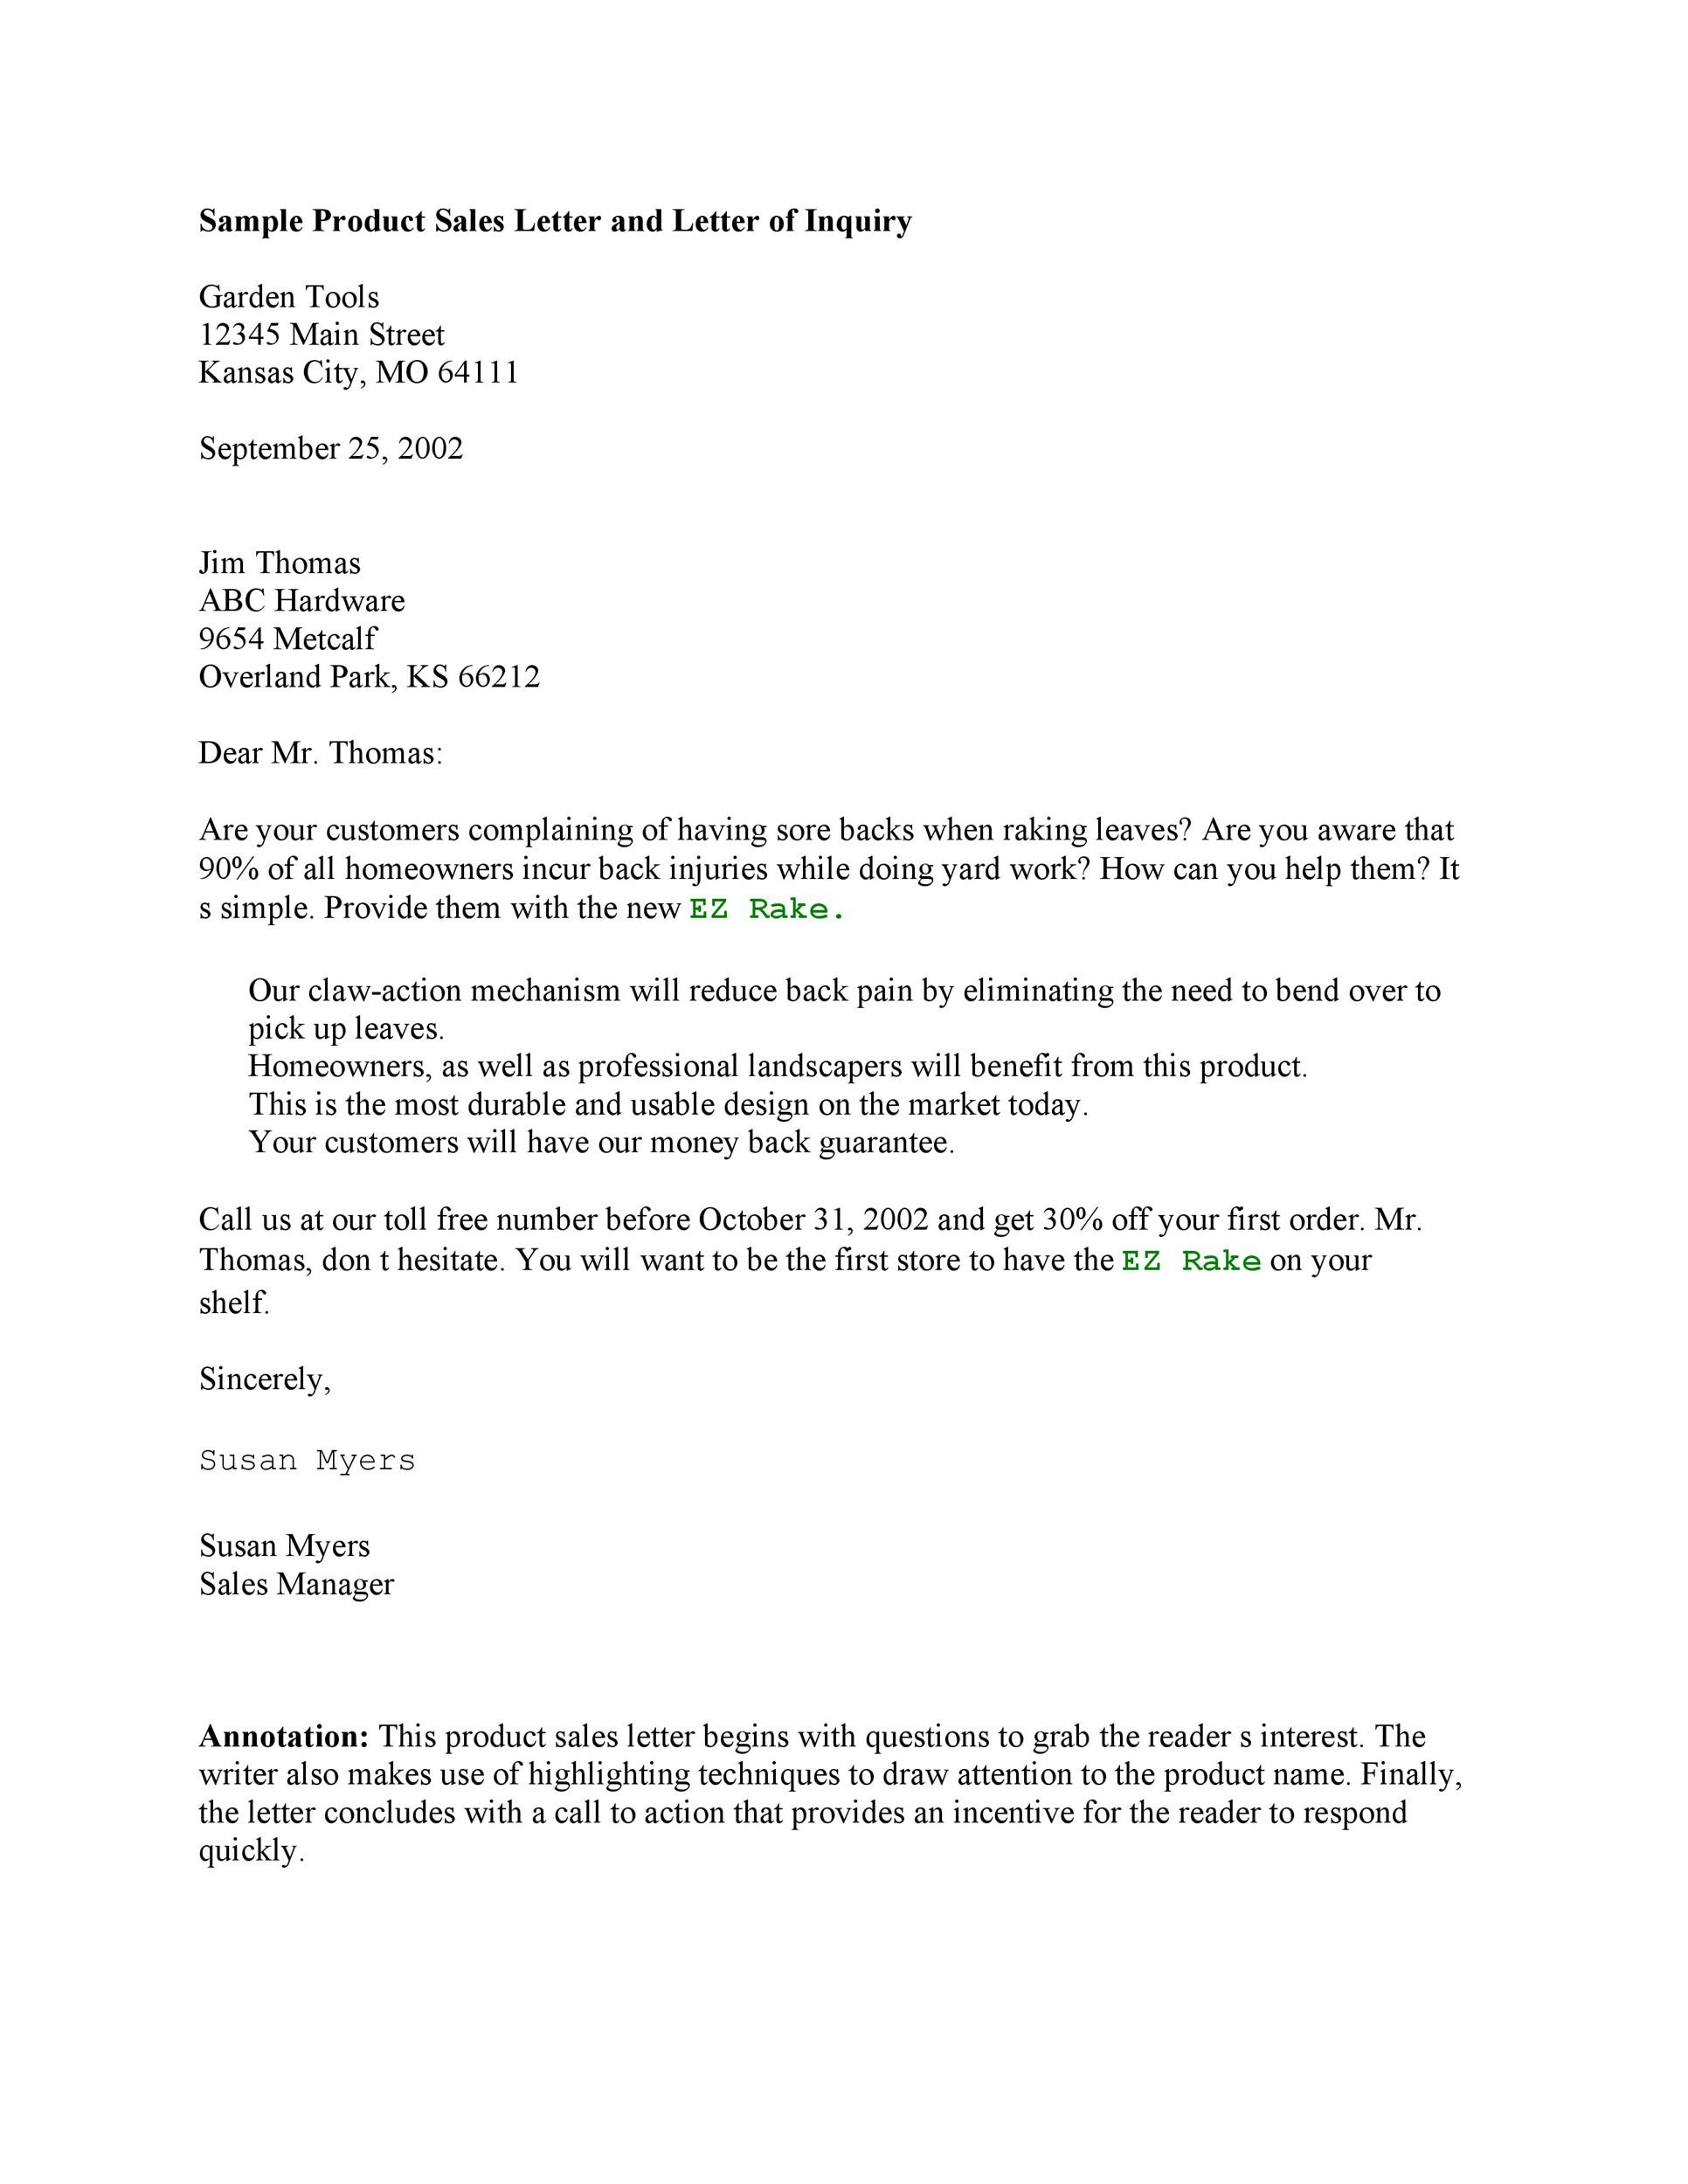 50 effective sales letter templates  w   examples   u1405 templatelab